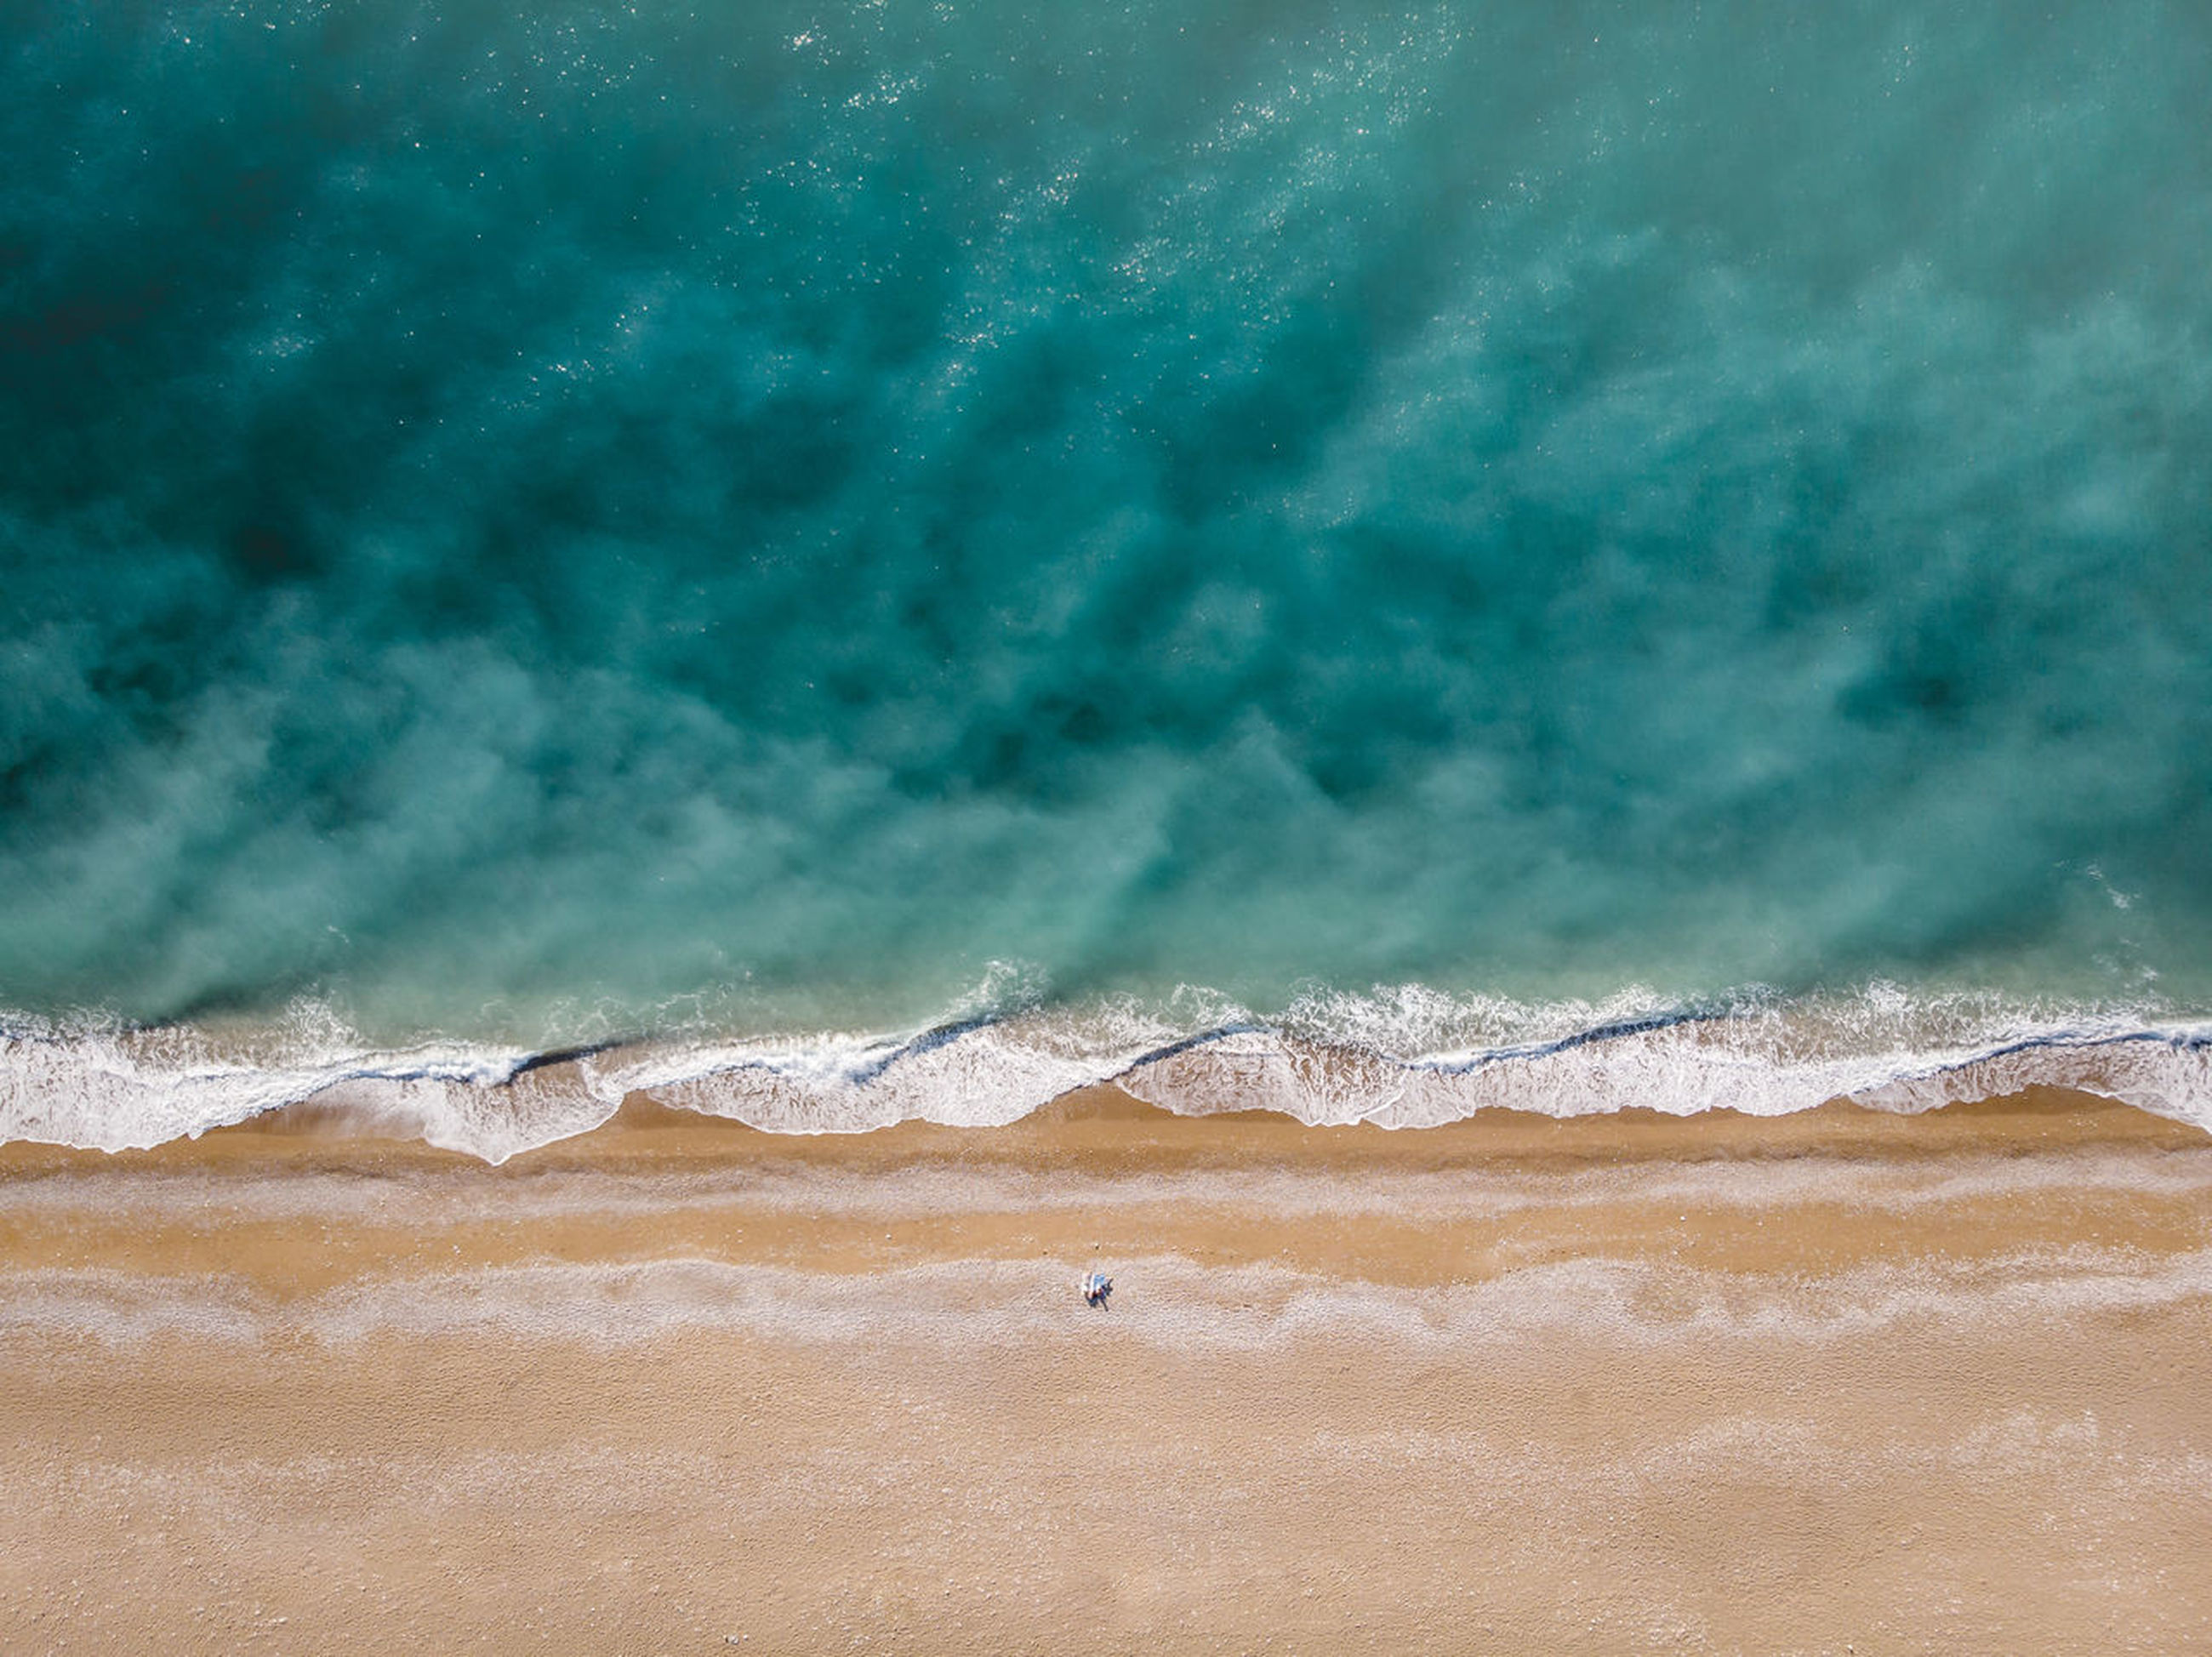 land, wave, water, beach, sea, sport, nature, beauty in nature, aquatic sport, motion, surfing, day, scenics - nature, sand, tranquility, outdoors, tranquil scene, high angle view, power in nature